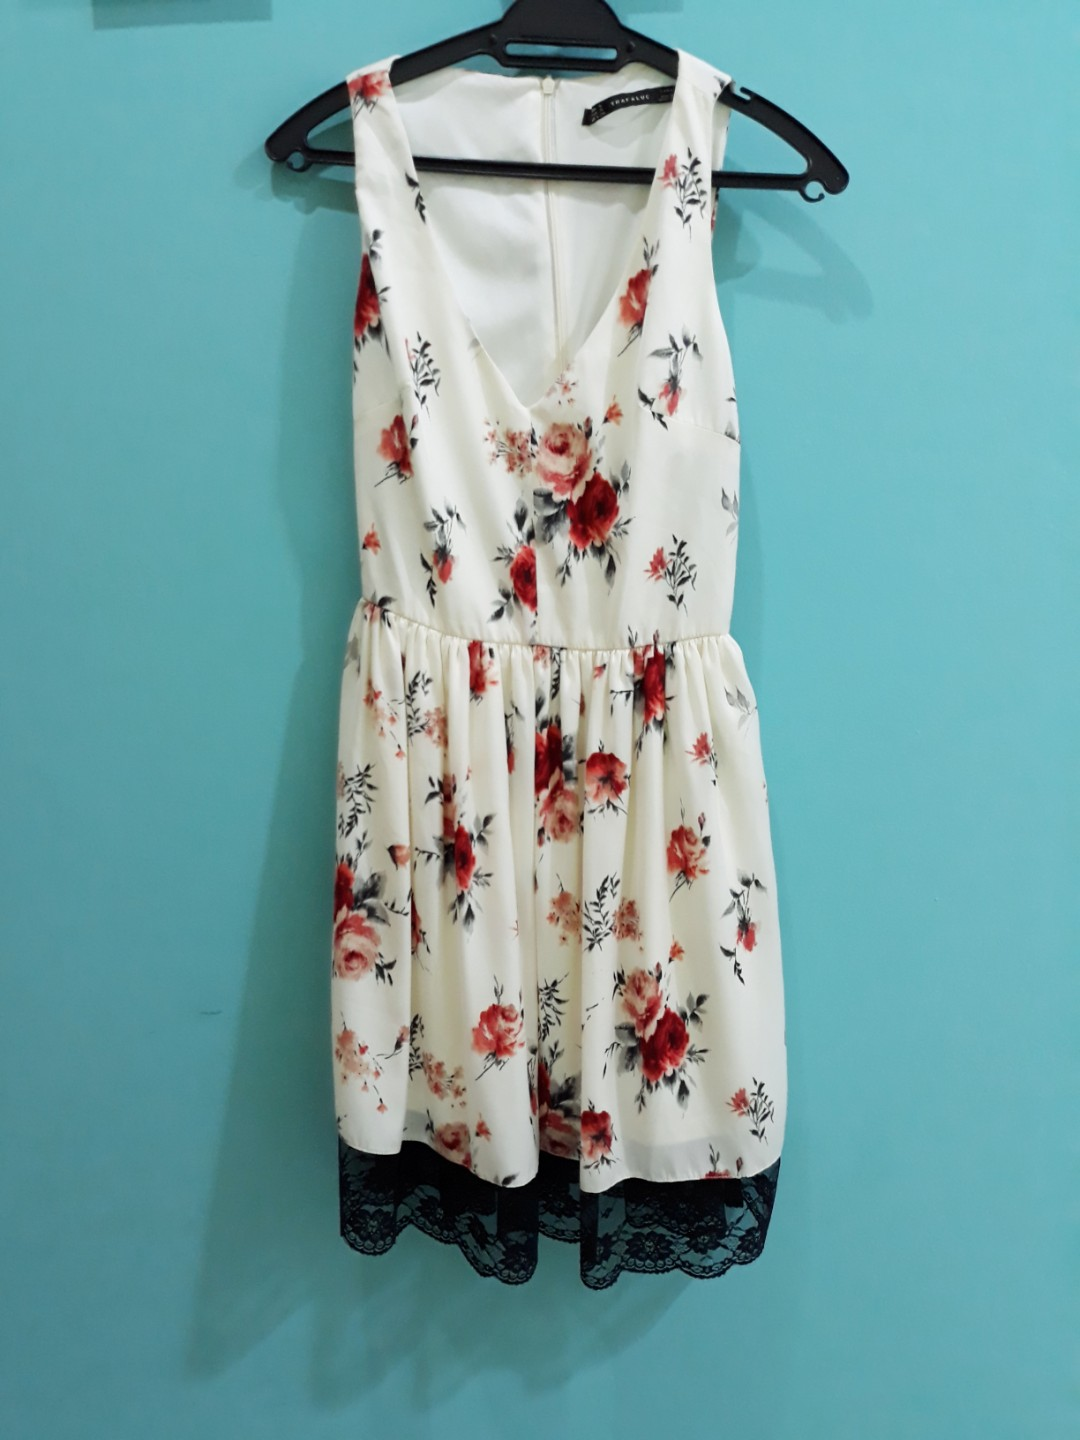 66d26448688a ZARA Floral Dress - off white, Women's Fashion, Clothes, Dresses on  Carousell